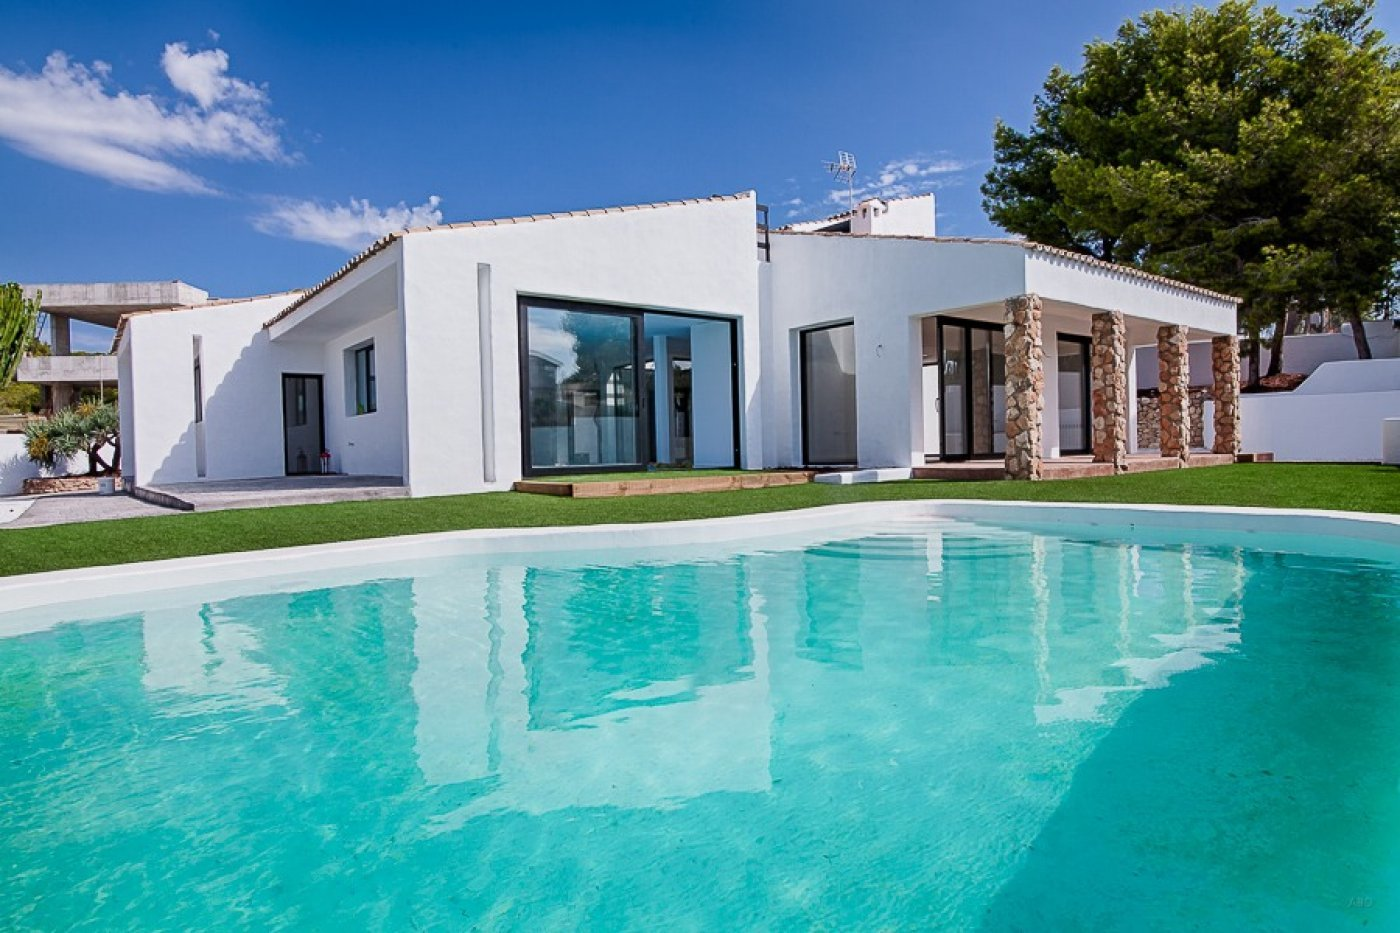 Large villa completely renovated in semi Ibiza-style